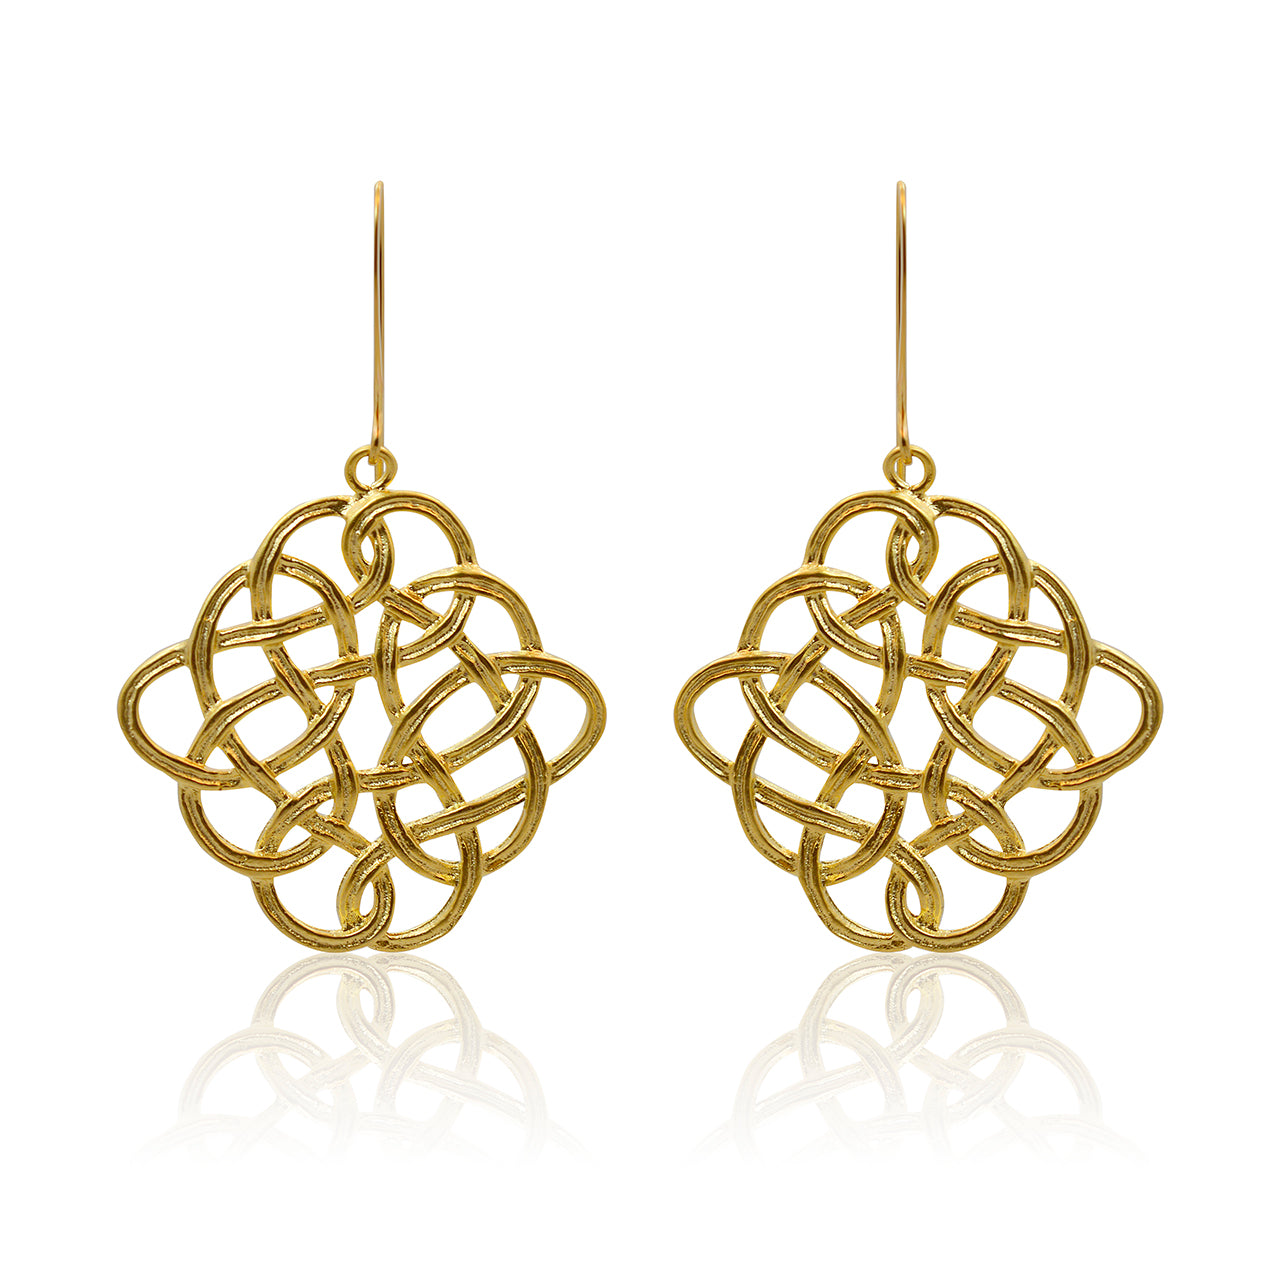 Eternity - Brushed Gold Celtic Knot Earrings - Editors Best Picks in Ottawa Life